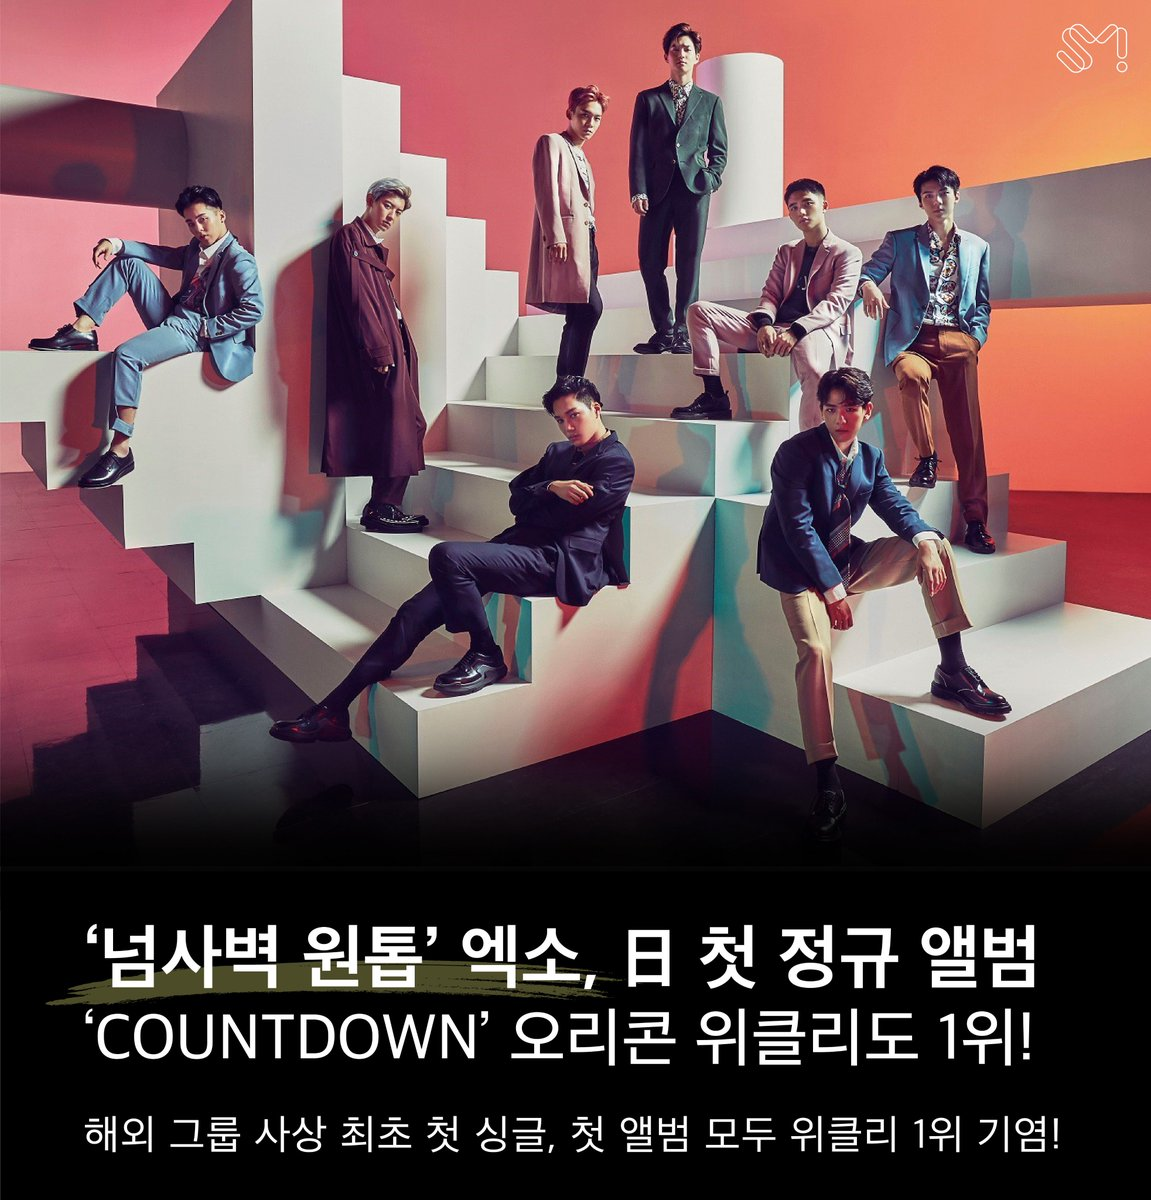 #EXO takes No.1 on Oricon's Weekly Album Chart with their first Japanese Album '#COUNTDOWN'  First international group to have their first single and full album in Japan reach No.1 weekly!  @weareoneEXO